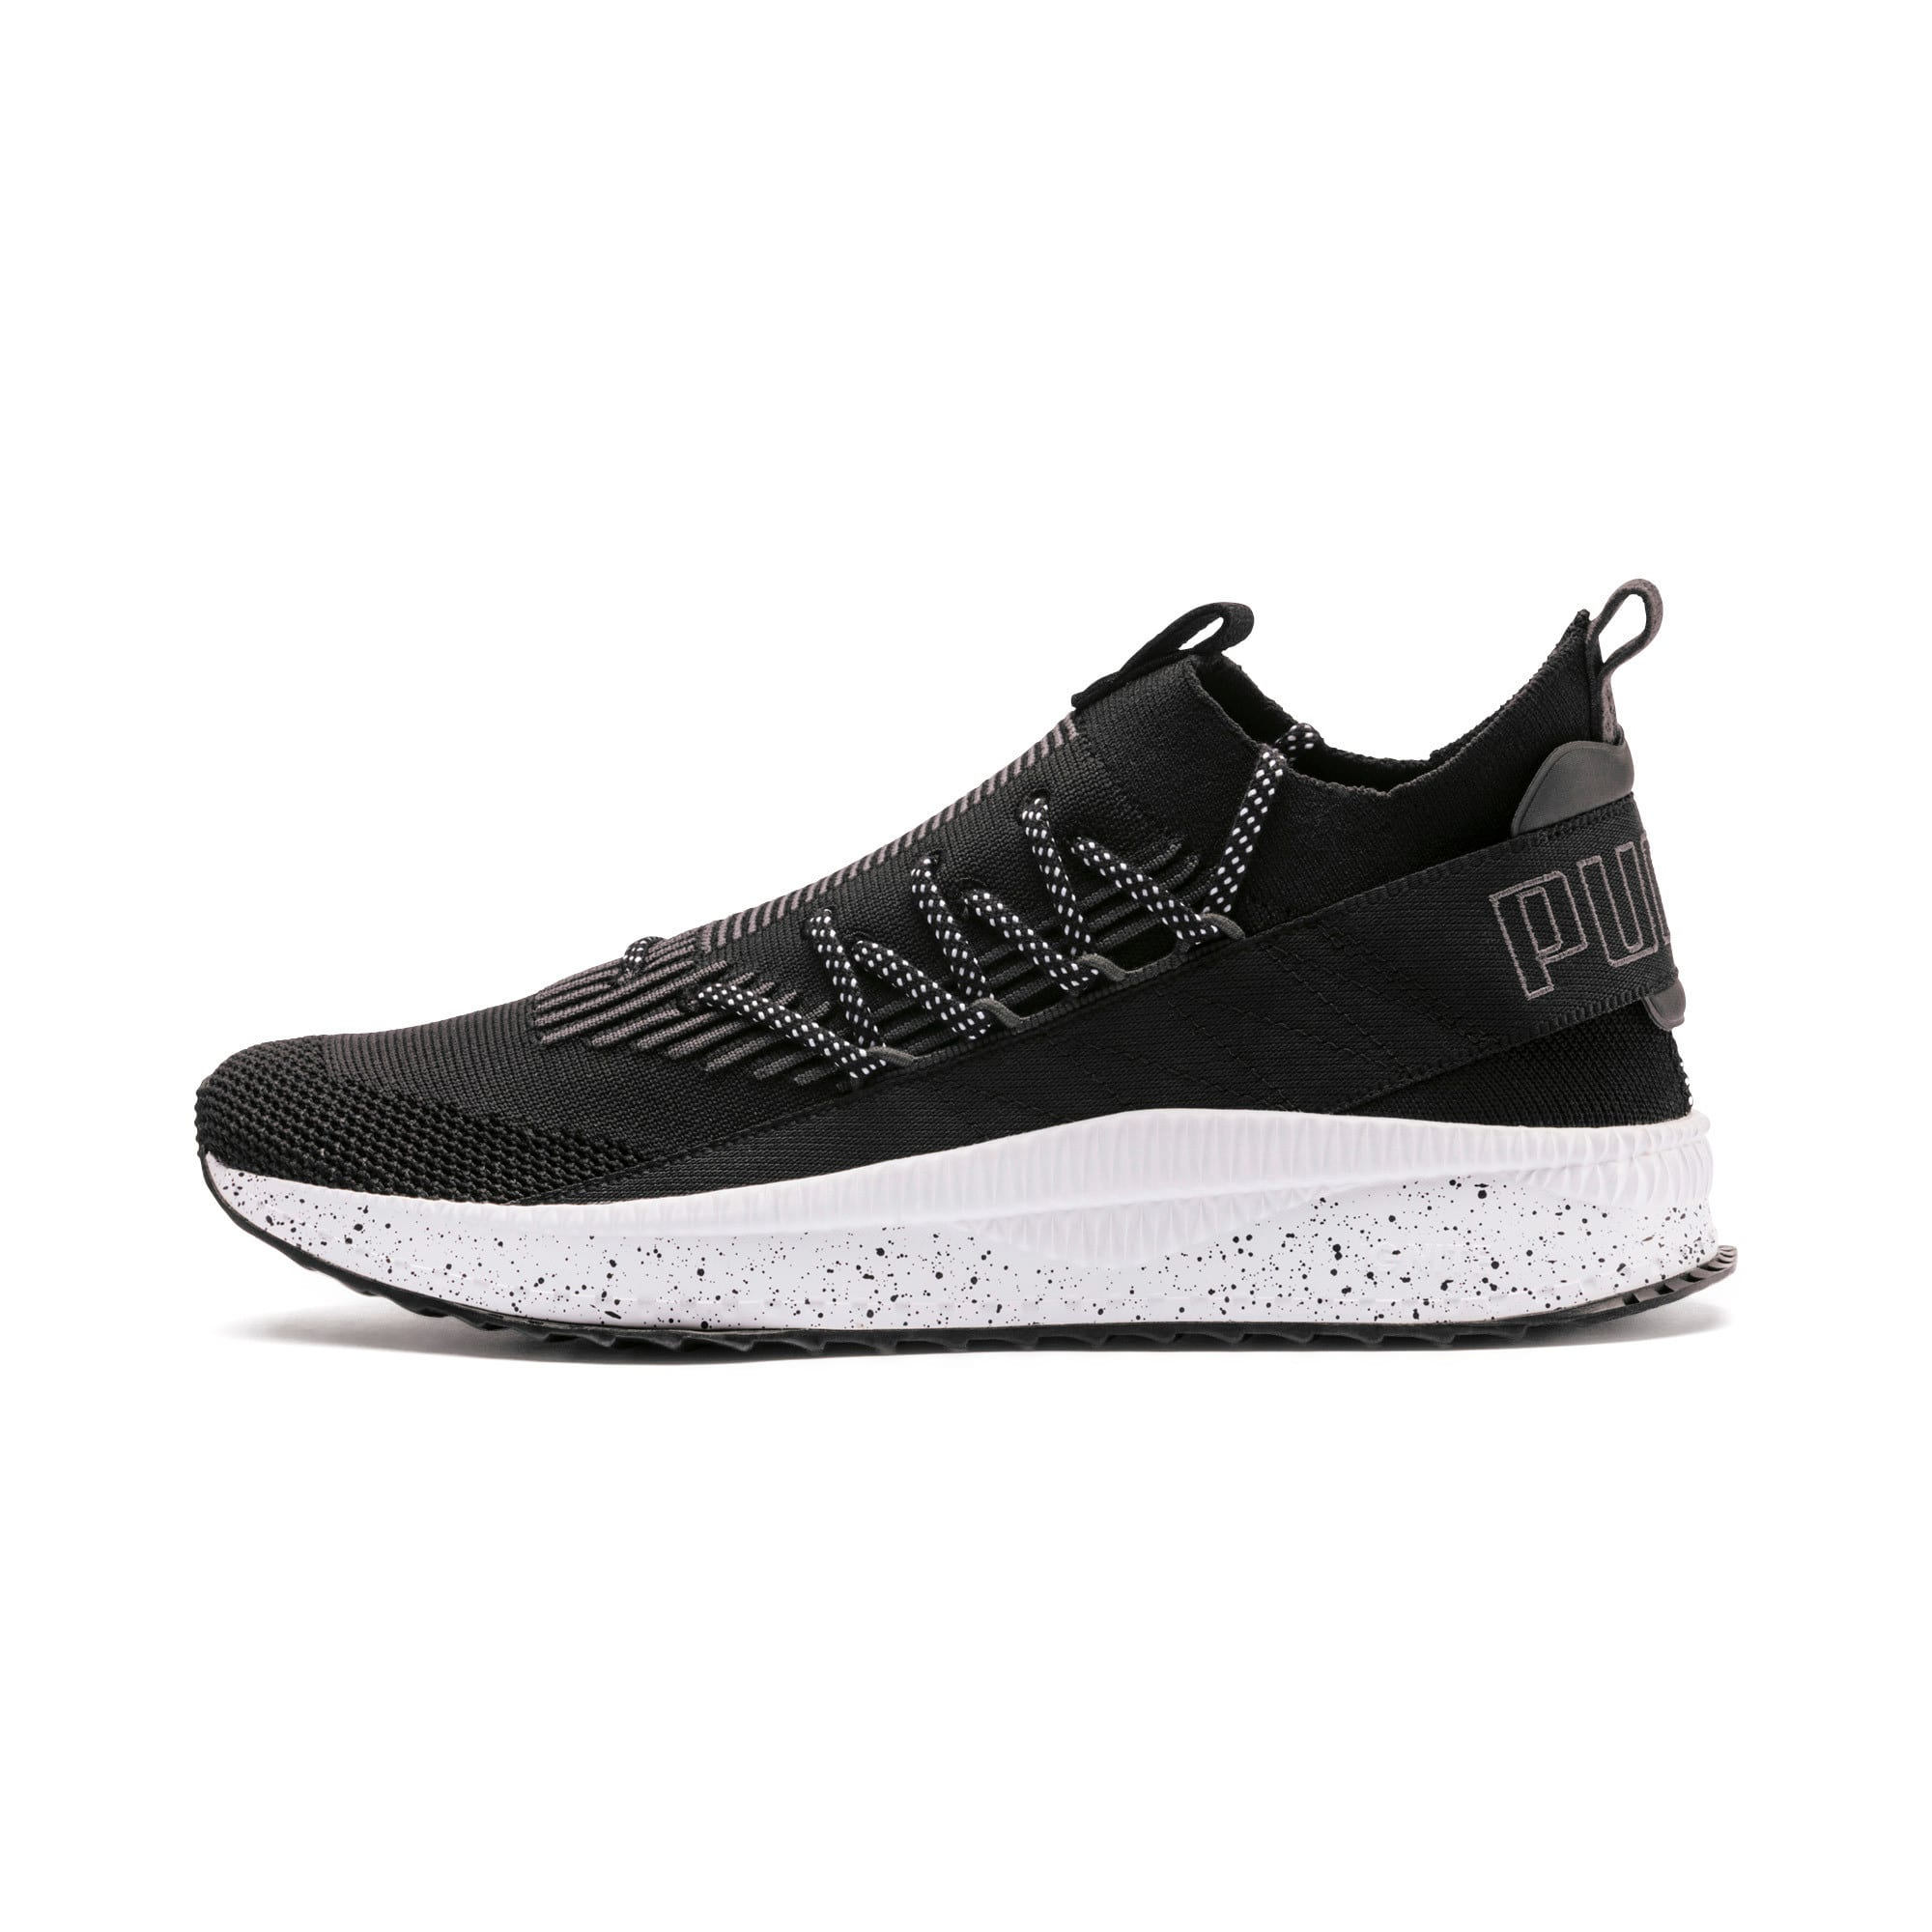 Thumbnail 1 of TSUGI Kai Jun Speckle evoKNIT Sneaker, Puma Black-Asphalt, medium